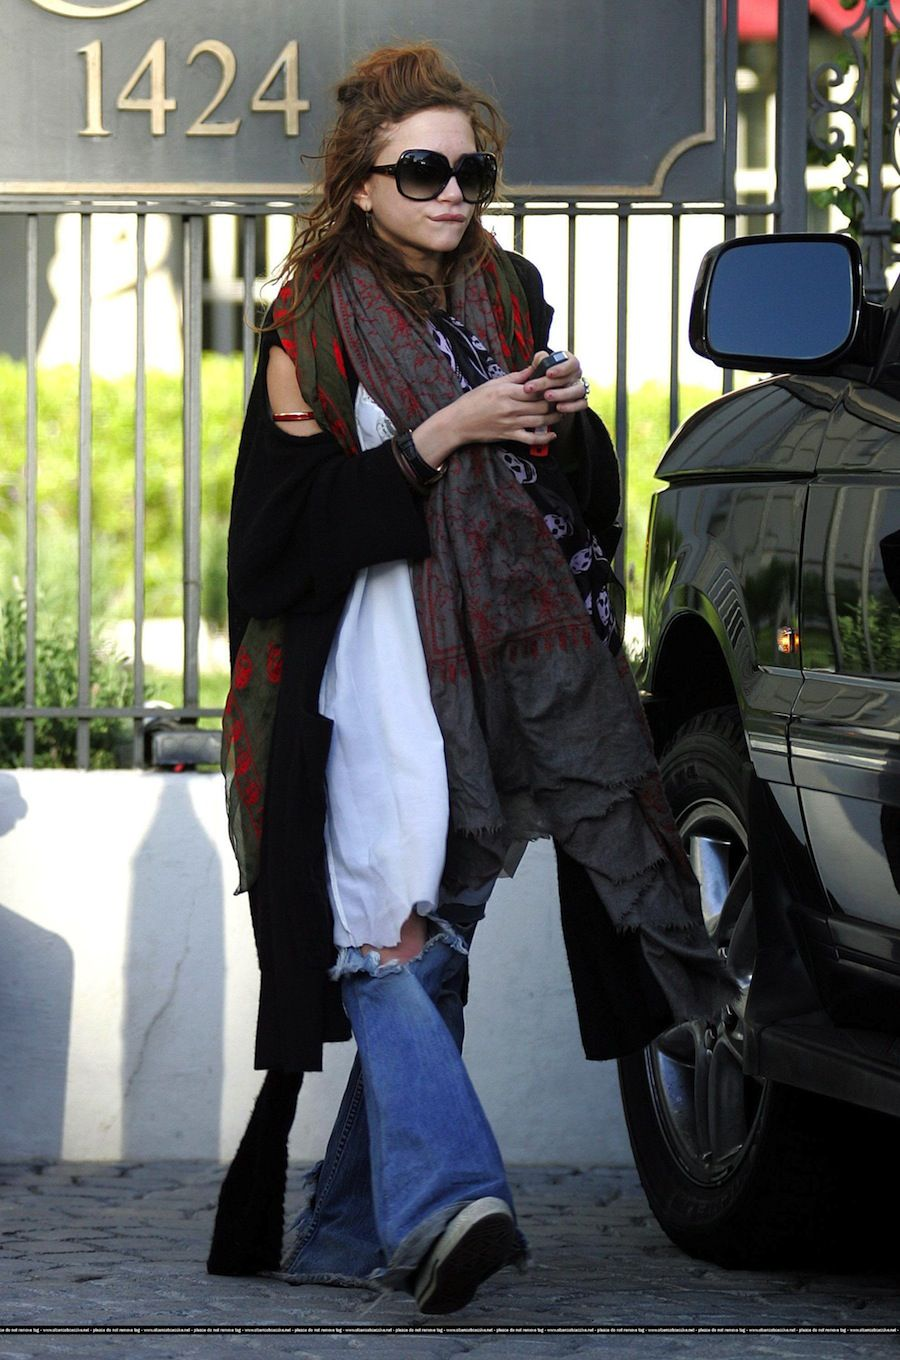 Memory Lane With Mary Kate Why We Fell In Love Mary Kate Olsen Style Mary Kate Olsen Fashion